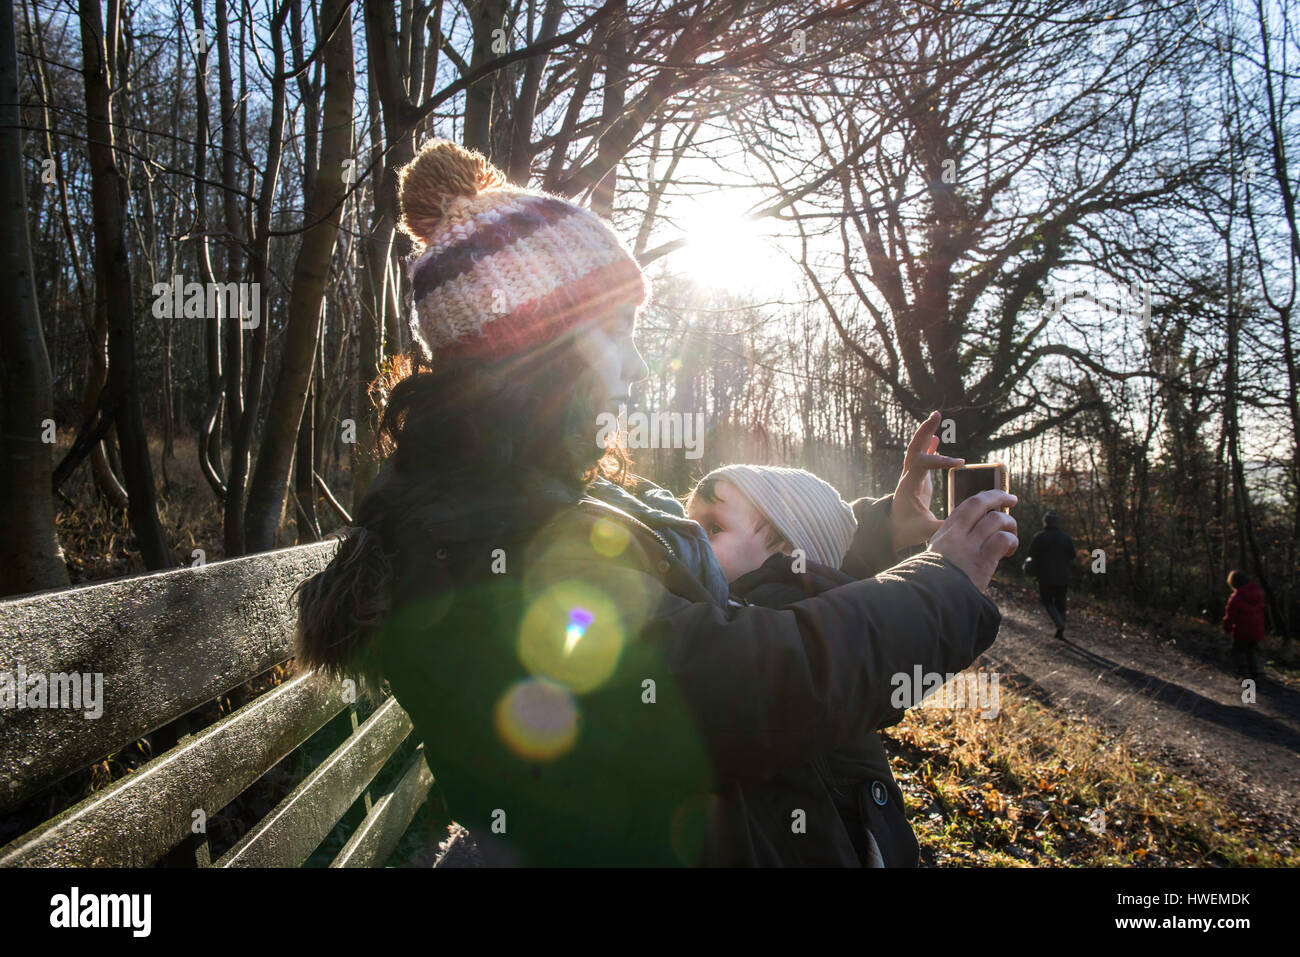 Mother sitting on bench with baby boy, taking selfie with smartphone - Stock Image